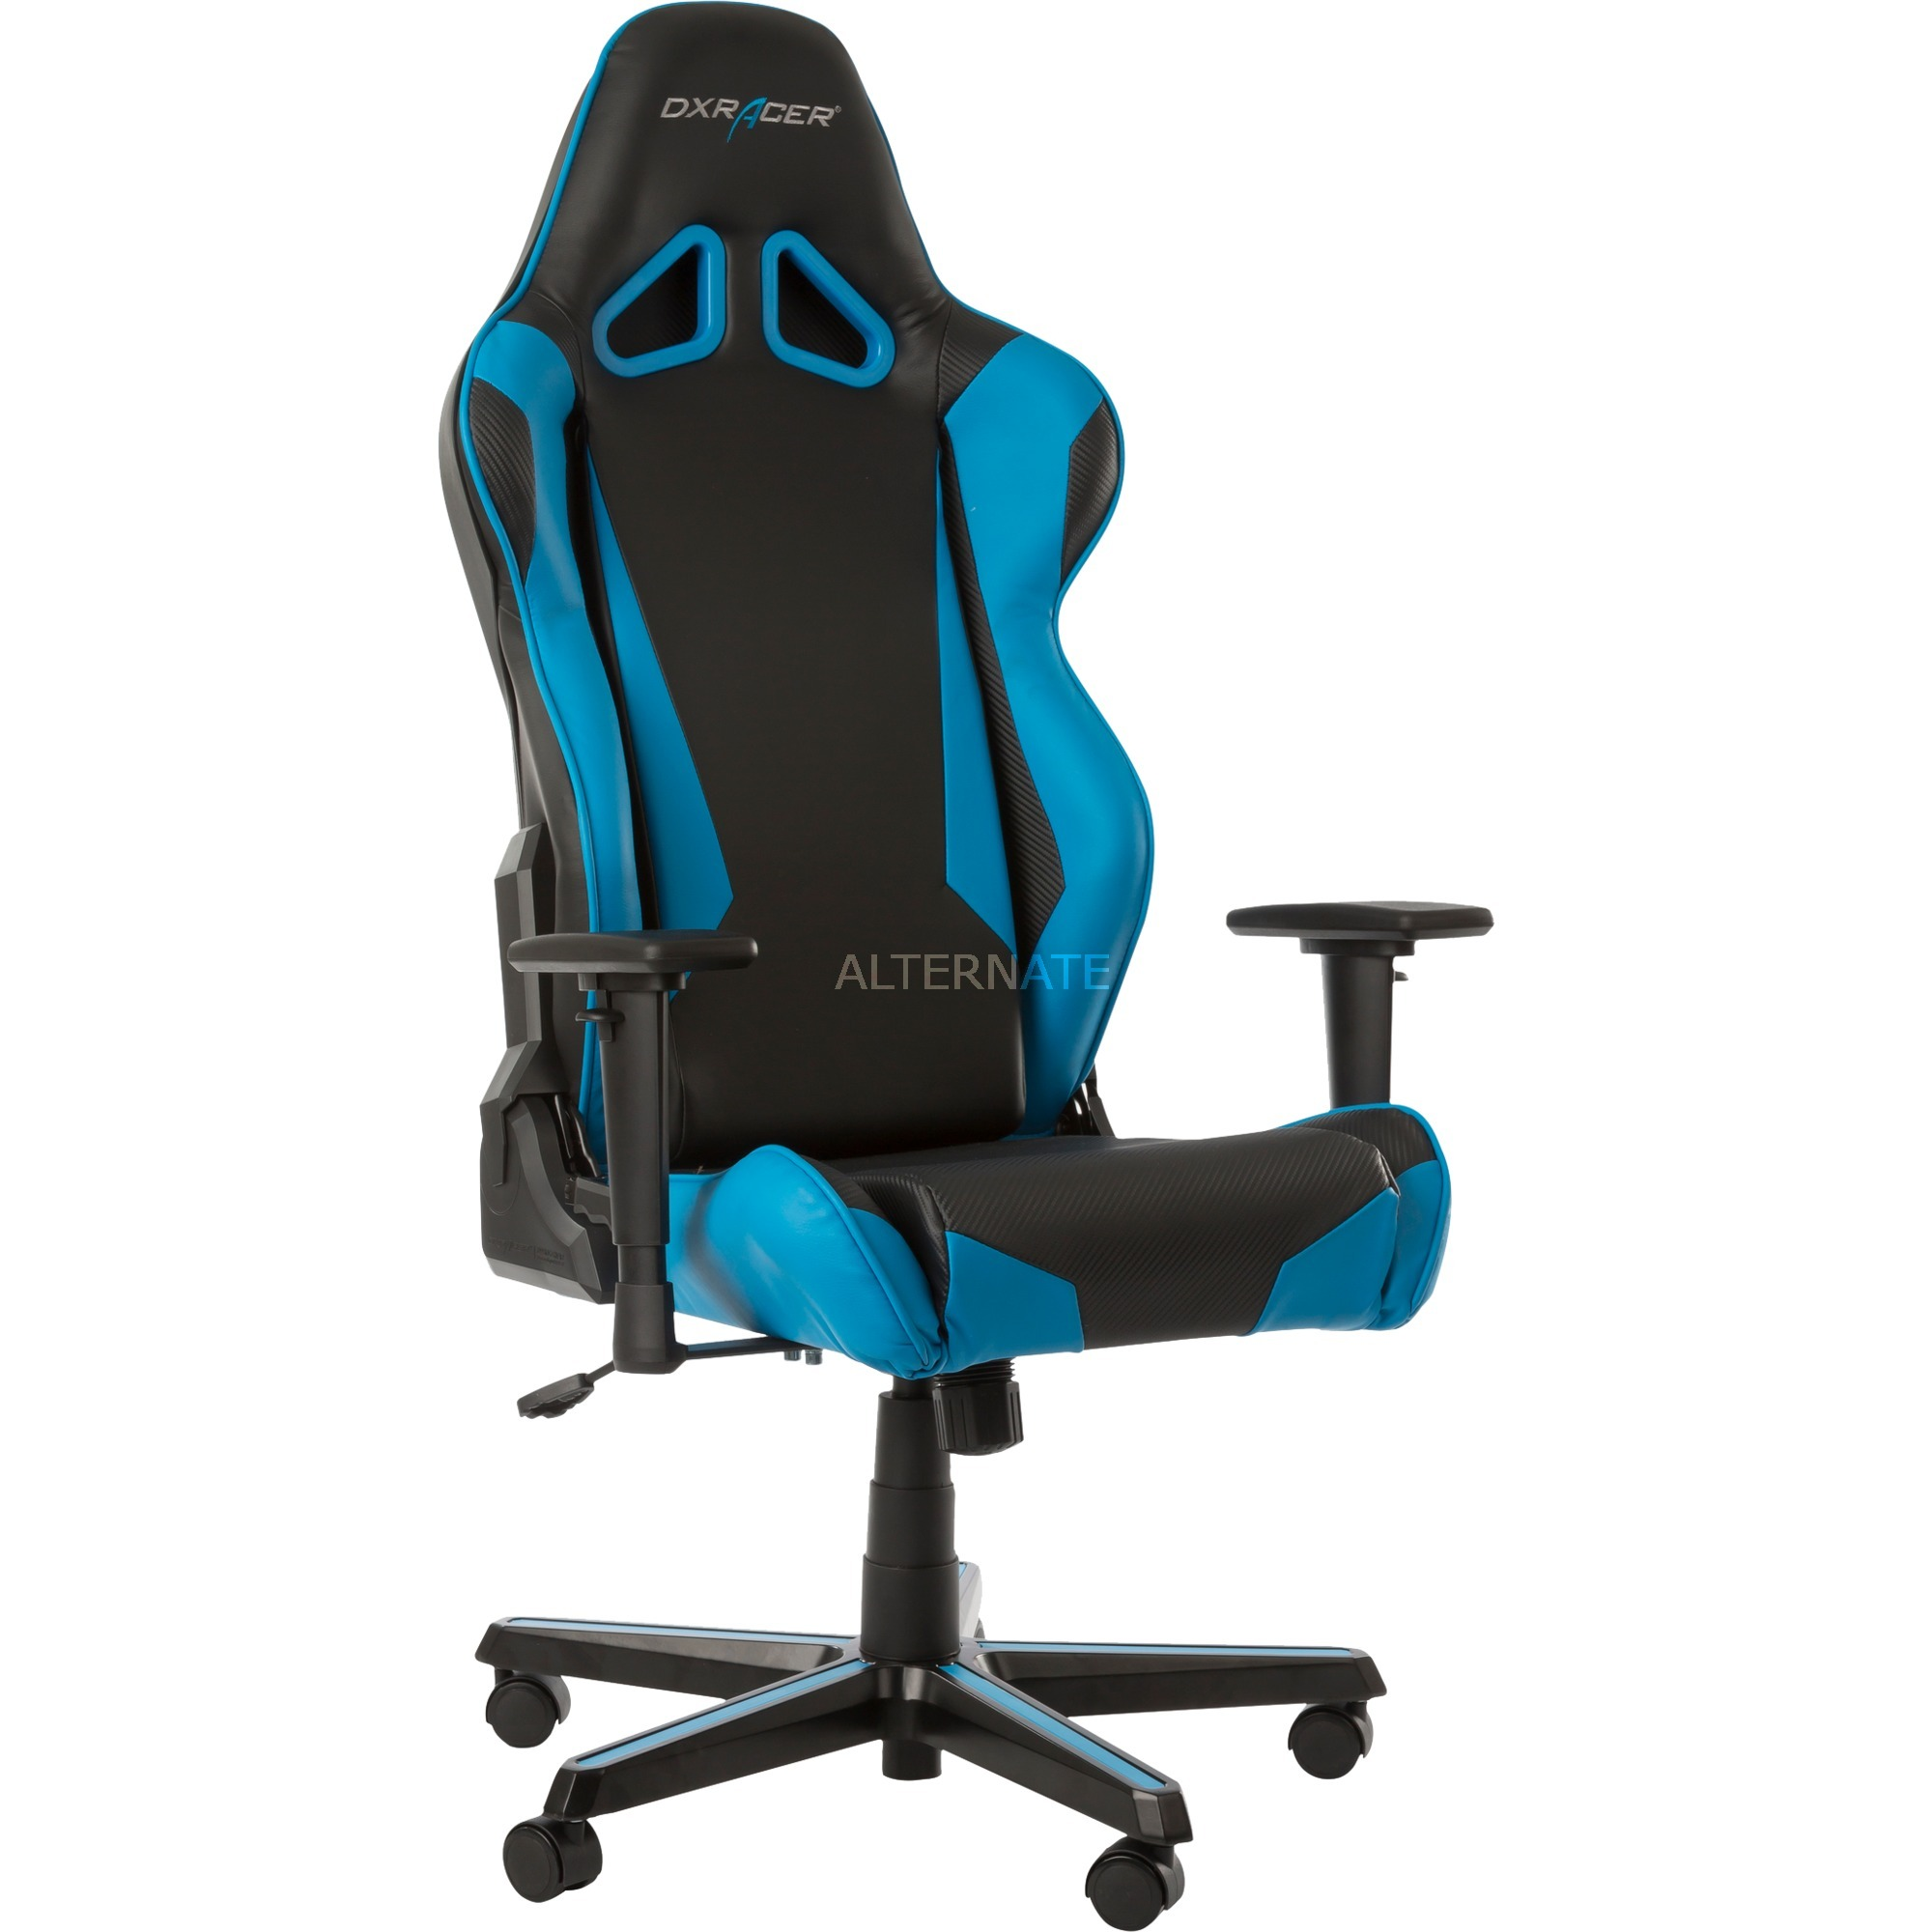 racing-shield-gaming-chair-ohrm1nb-spil-pladser